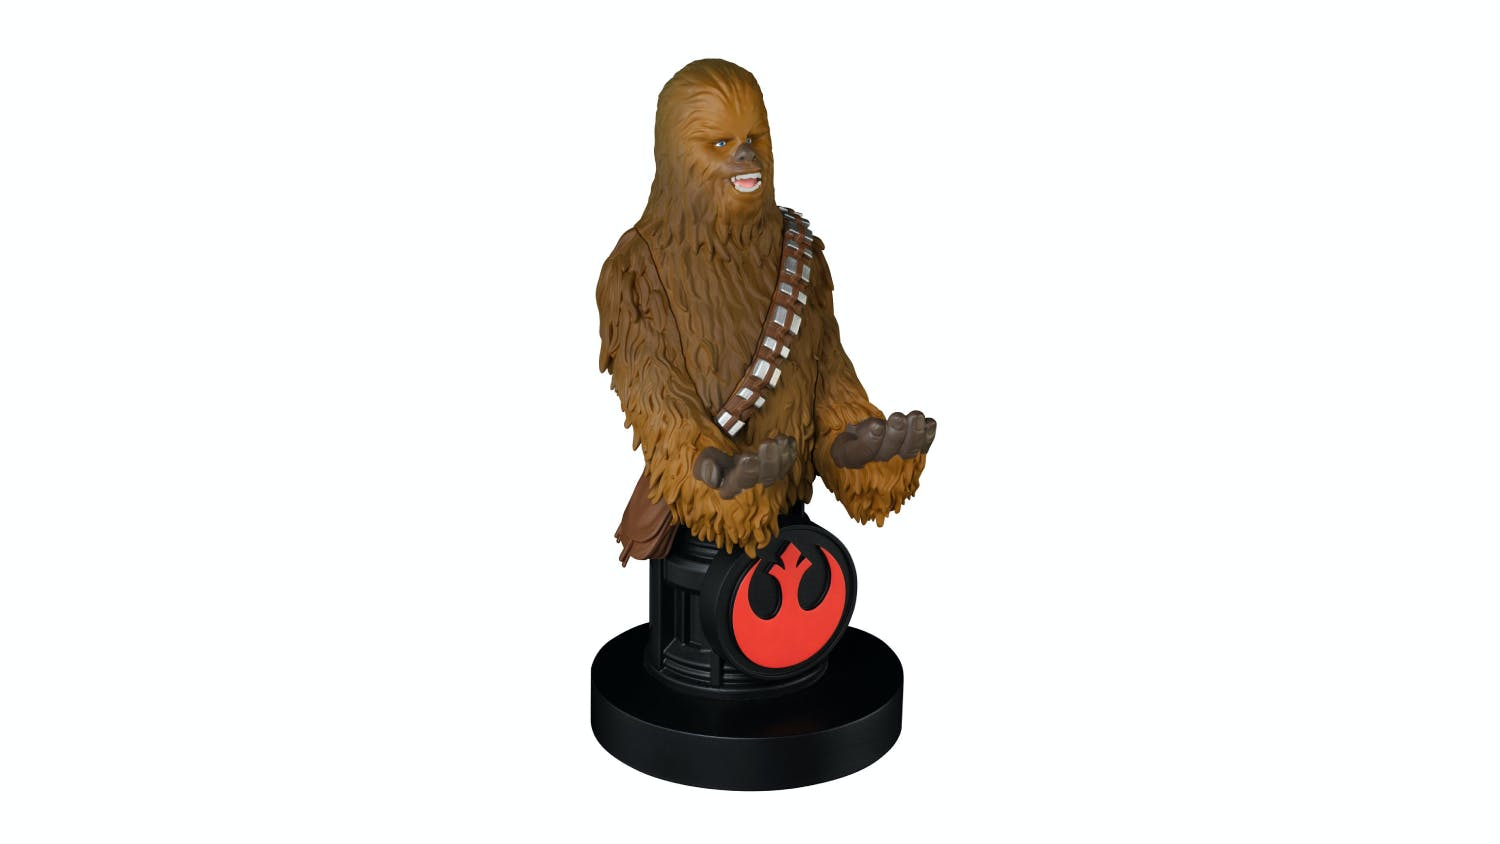 Cable Guys Phone/Controller Holder - Chewbacca